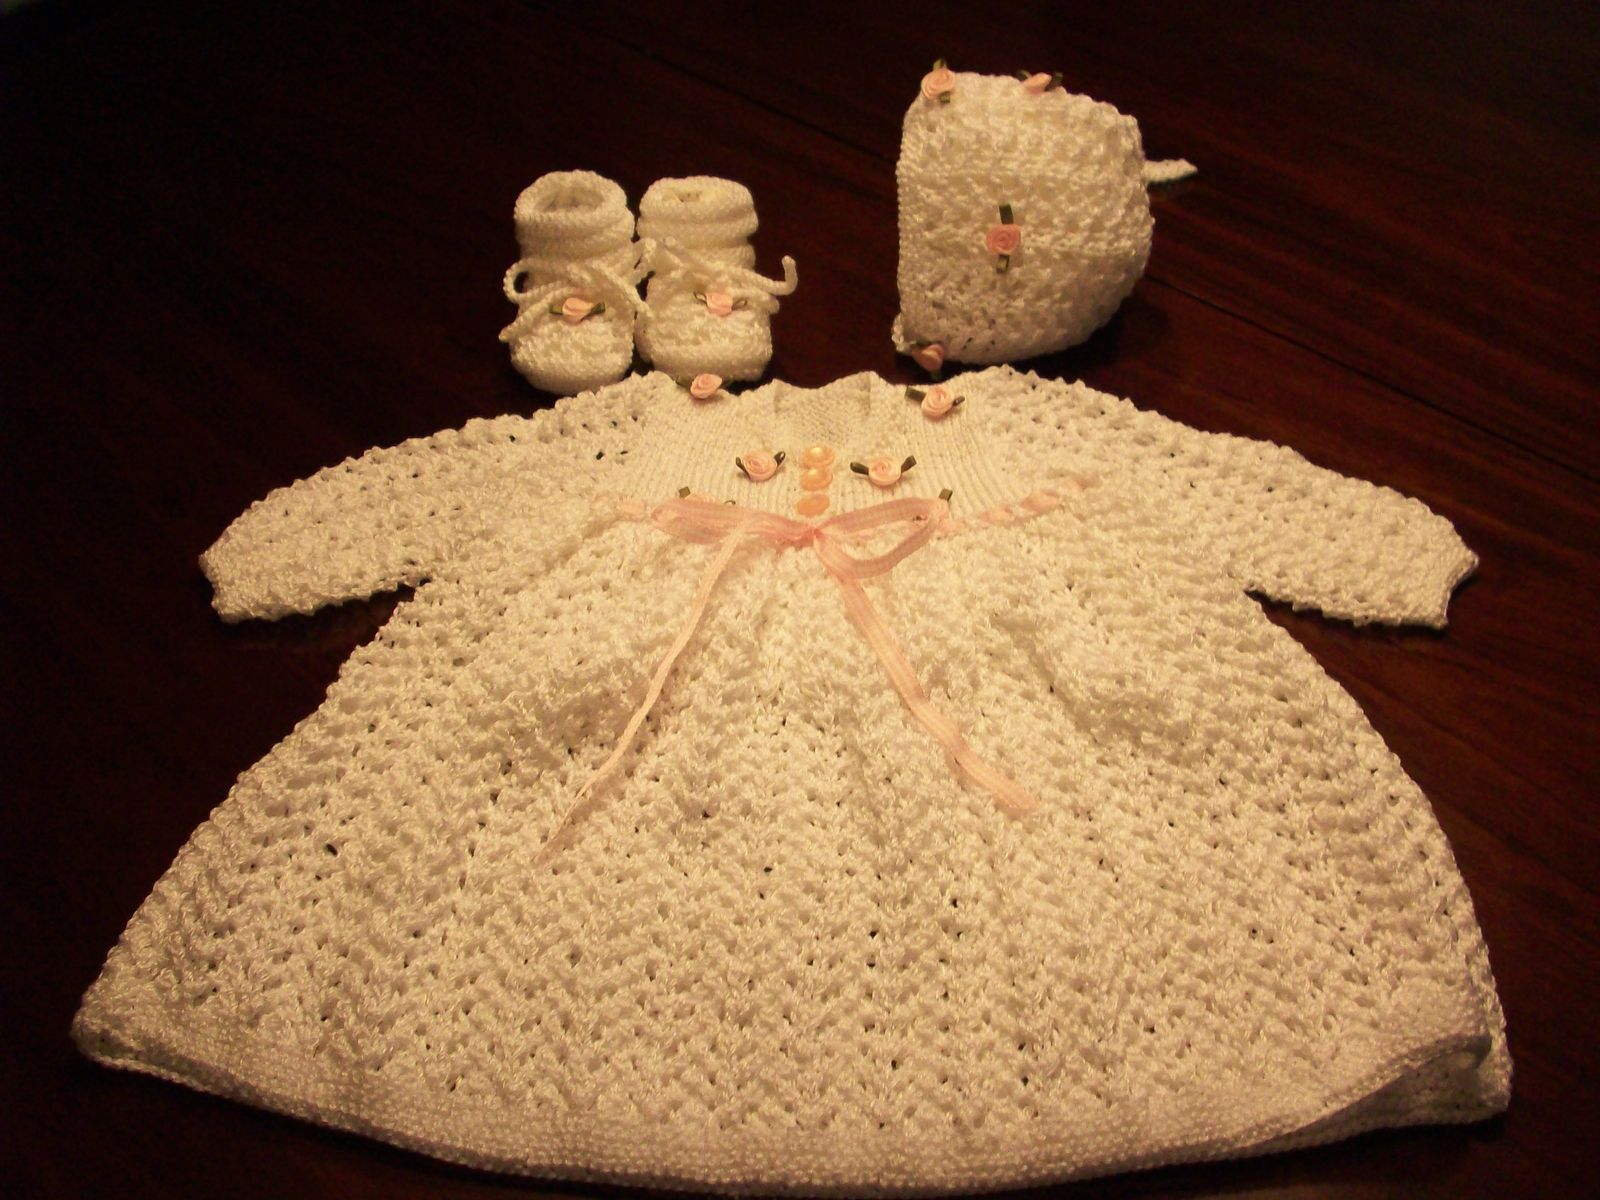 Custom Hand Knit Baby Outfit Dress Hat Bonnet And Booties by C&R